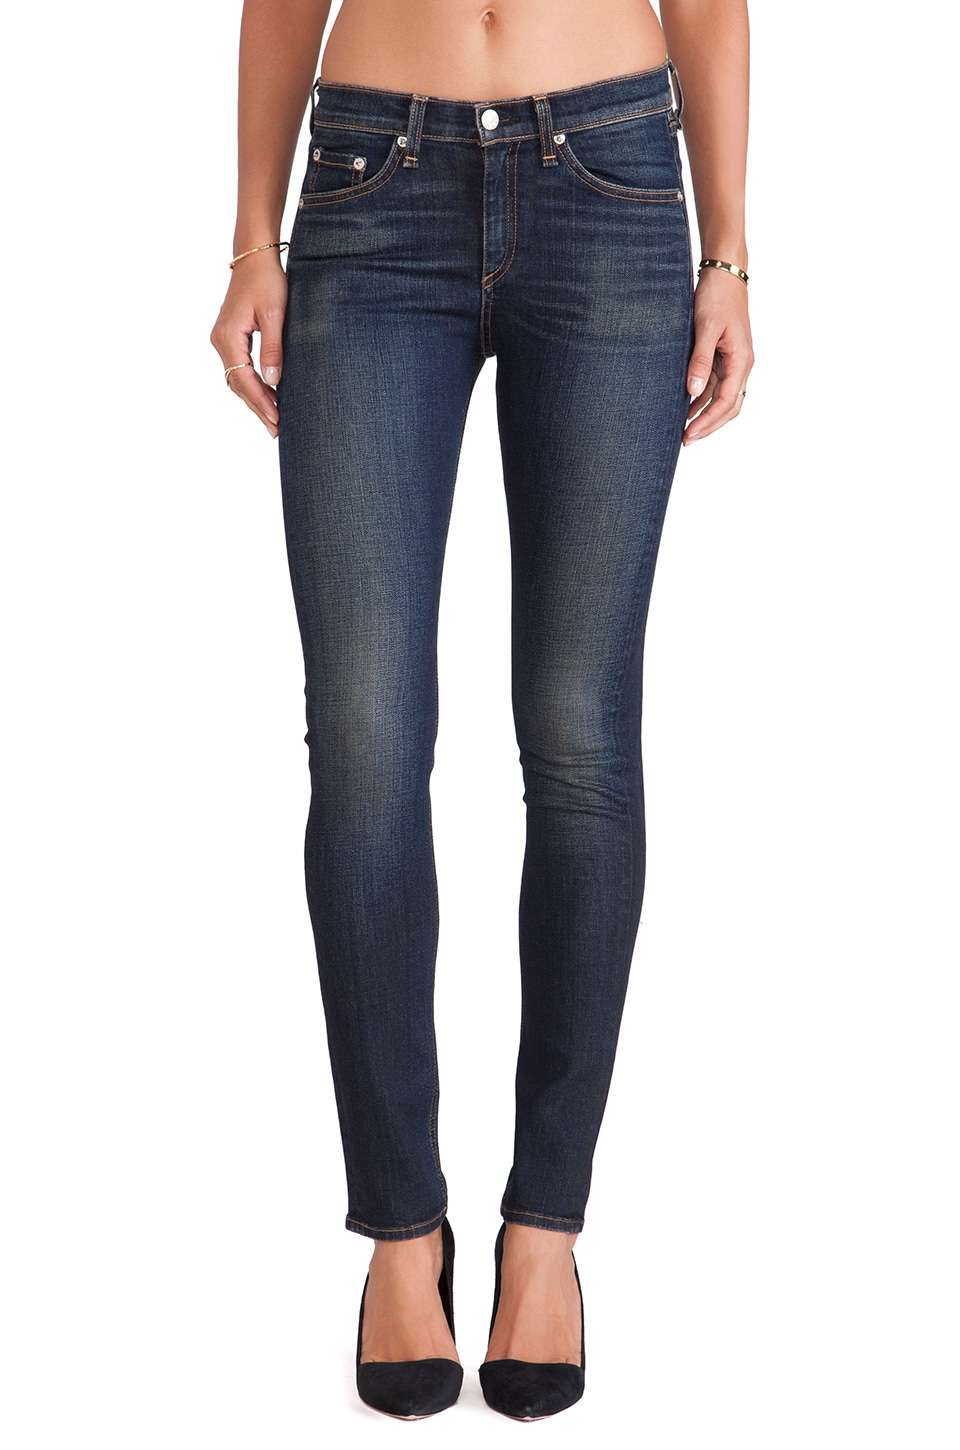 Rag & Bone The High-Rise Skinny in Chaucer